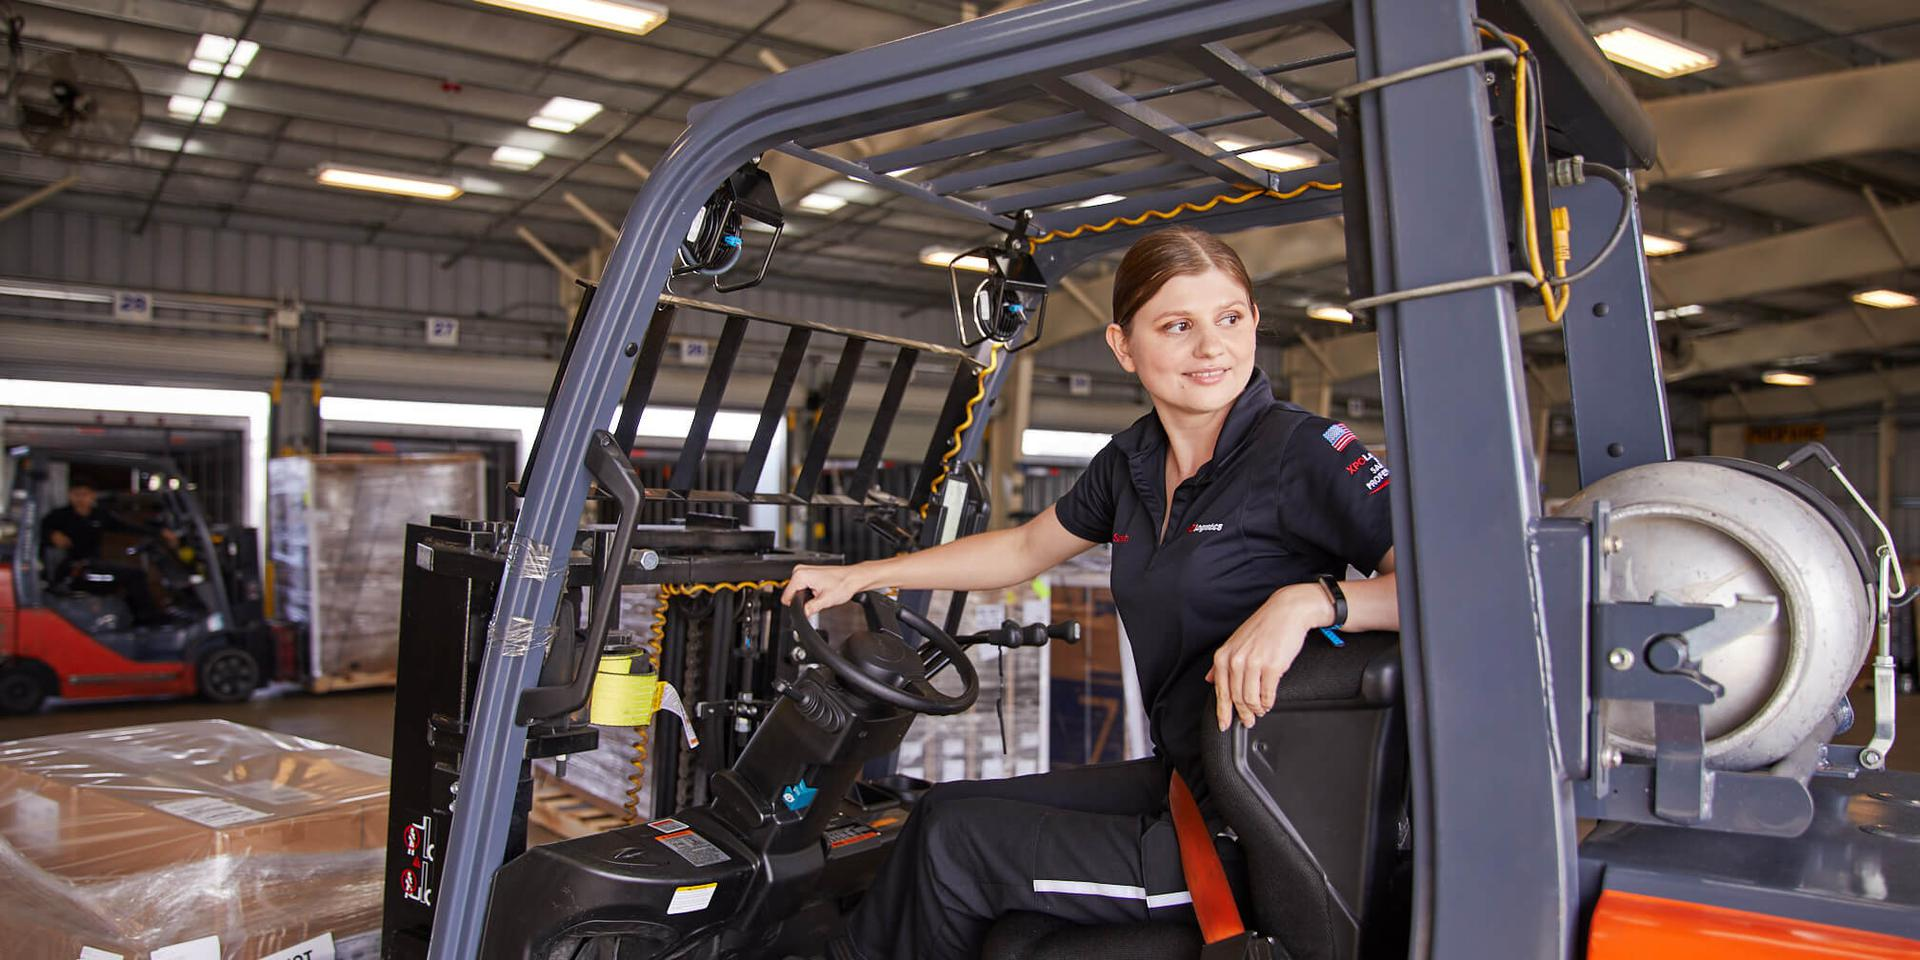 LTL forklift operator on dock